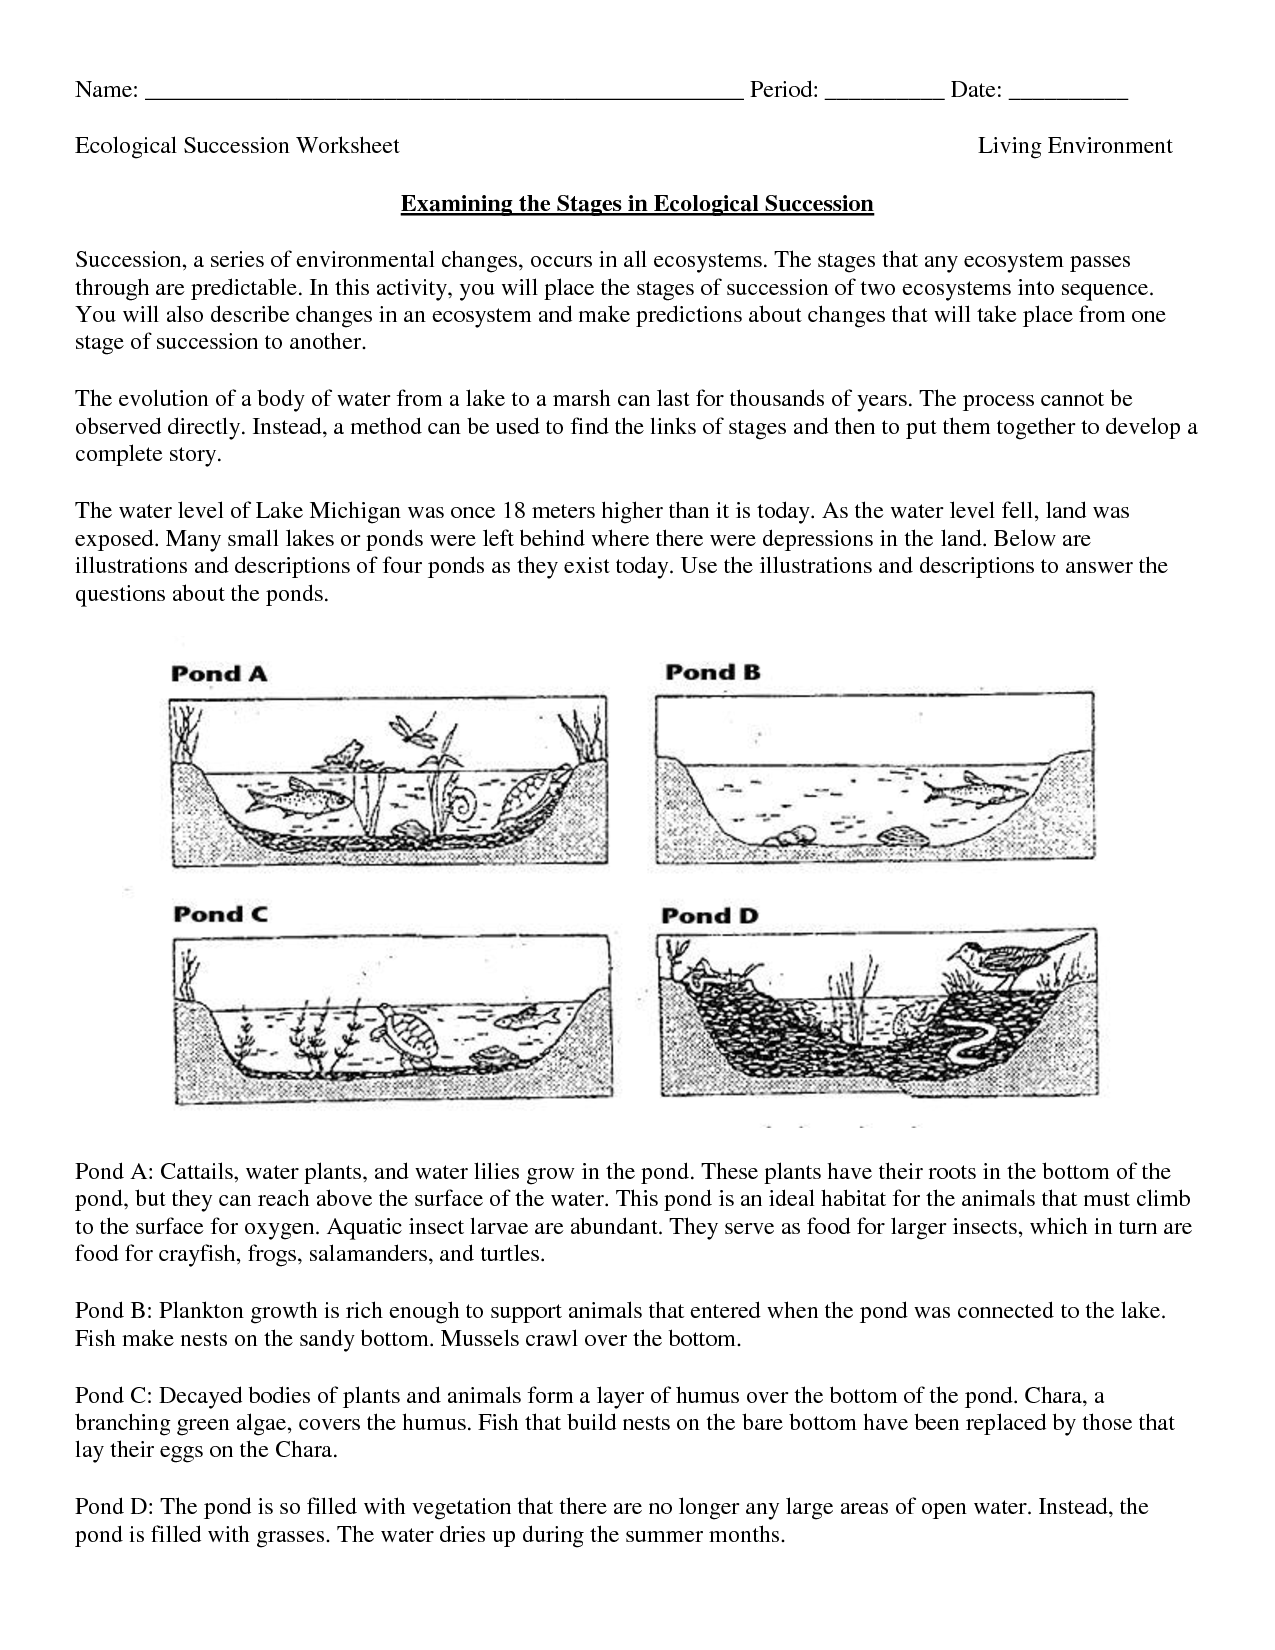 science worksheets ecosystem Biology Worksheet Get Now